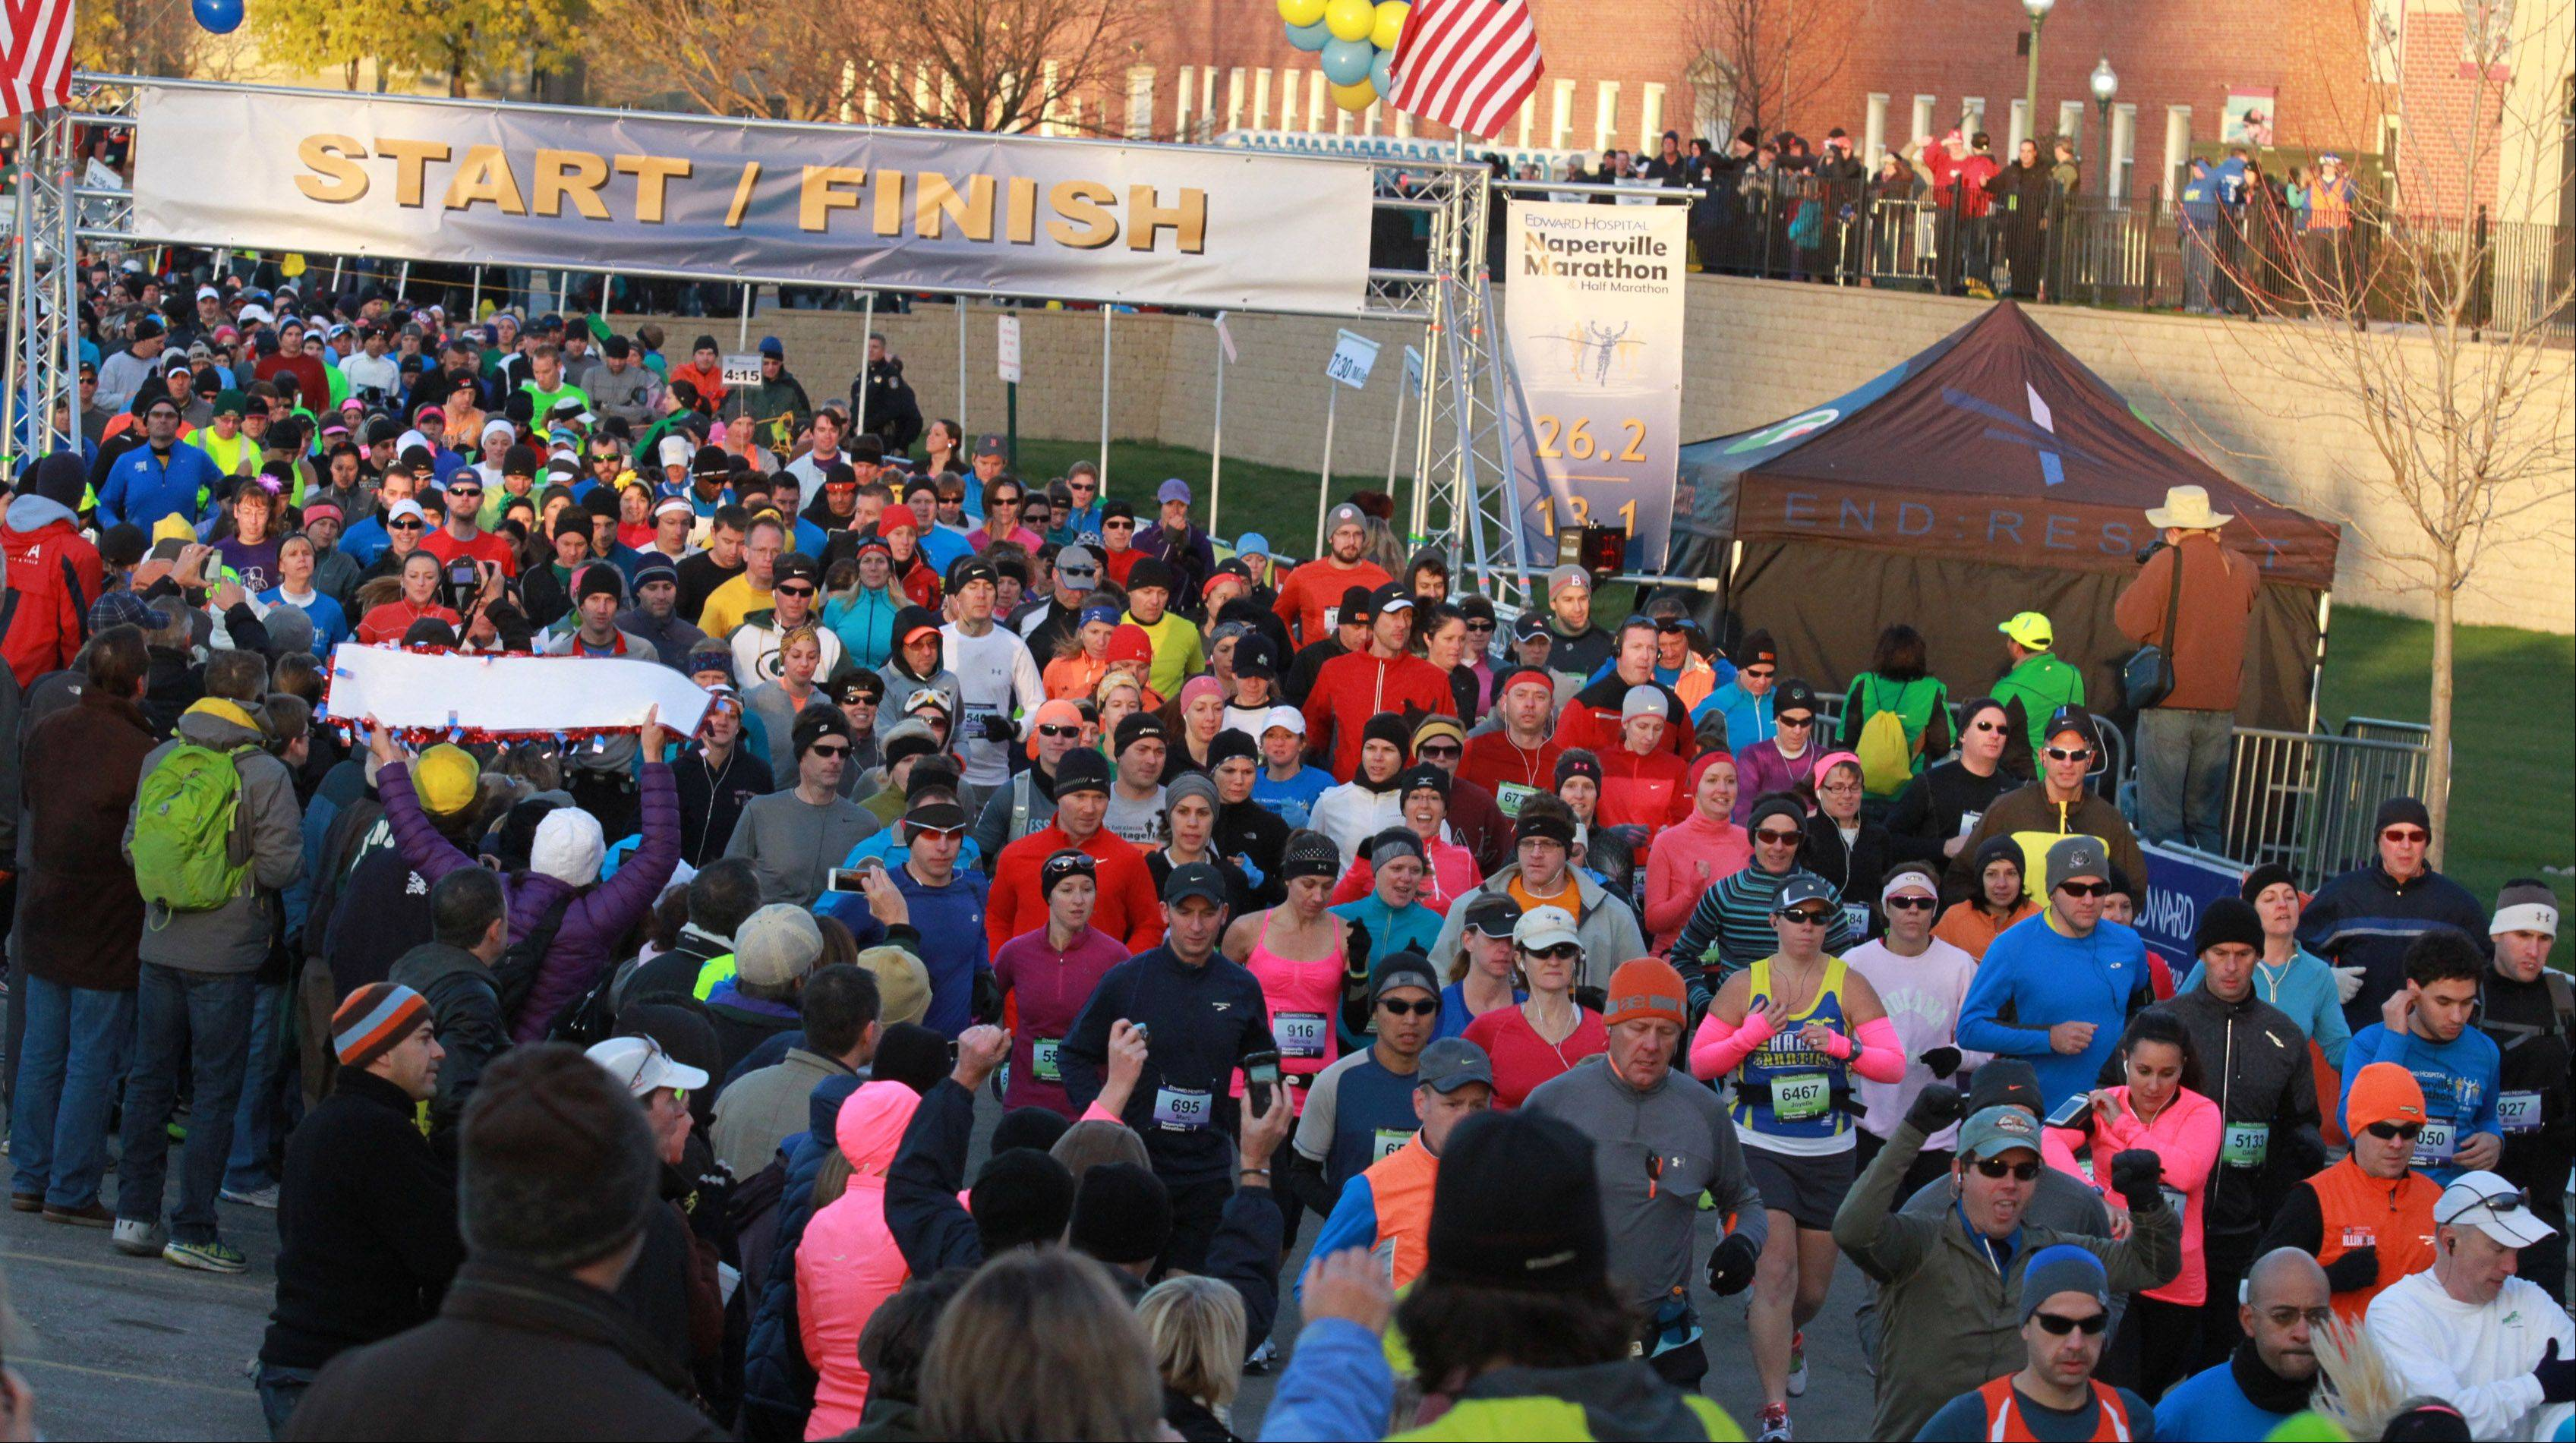 Naperville runners sweep city's first marathon